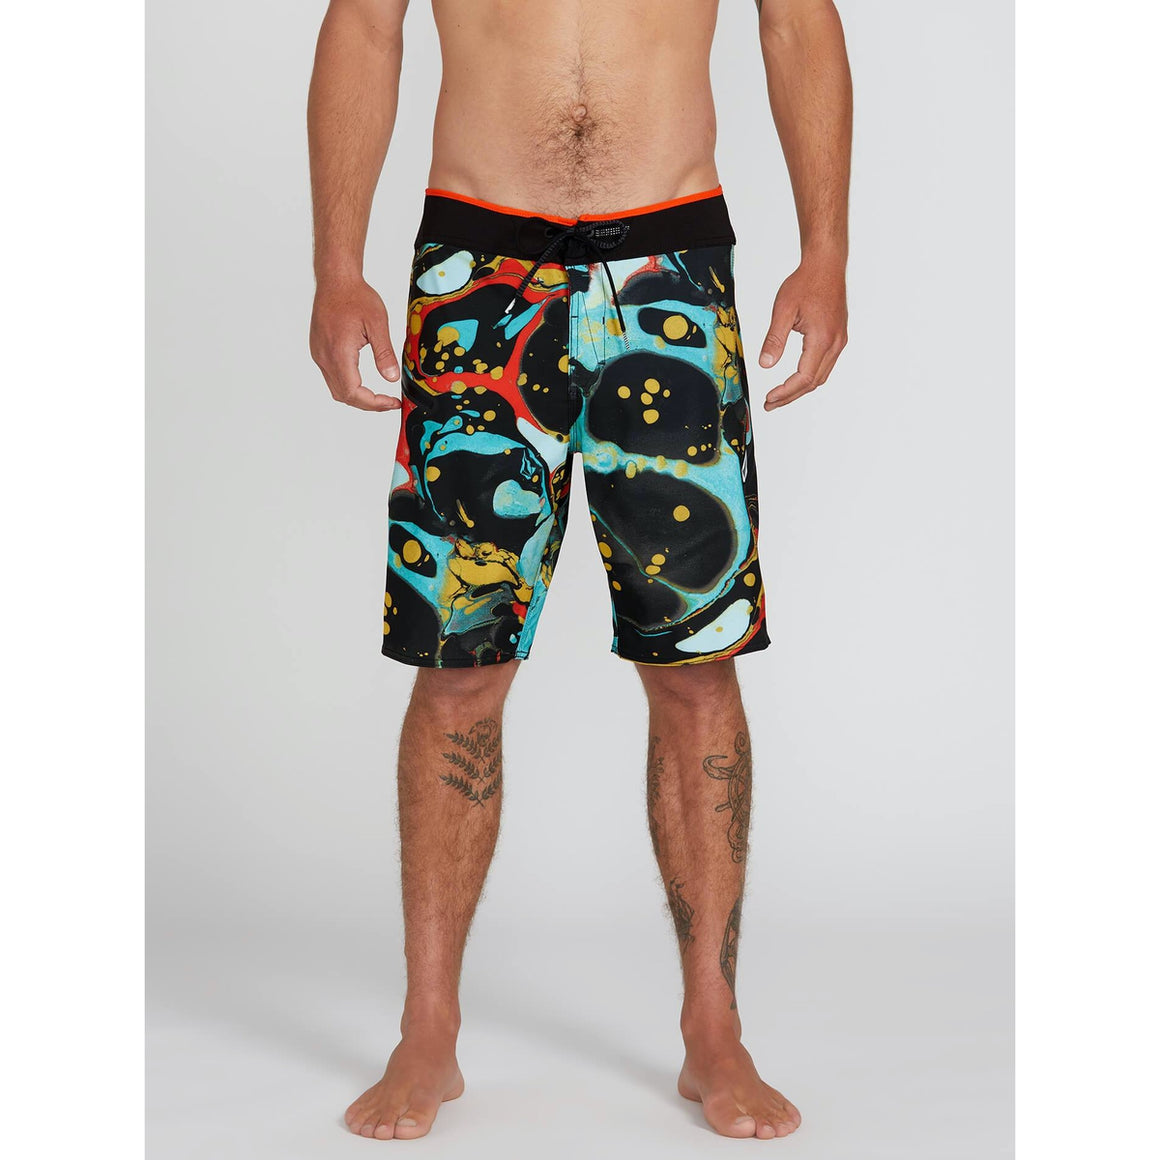 Boardshorts - Volcom Stone Plus Mod-Tech Trunks - Black